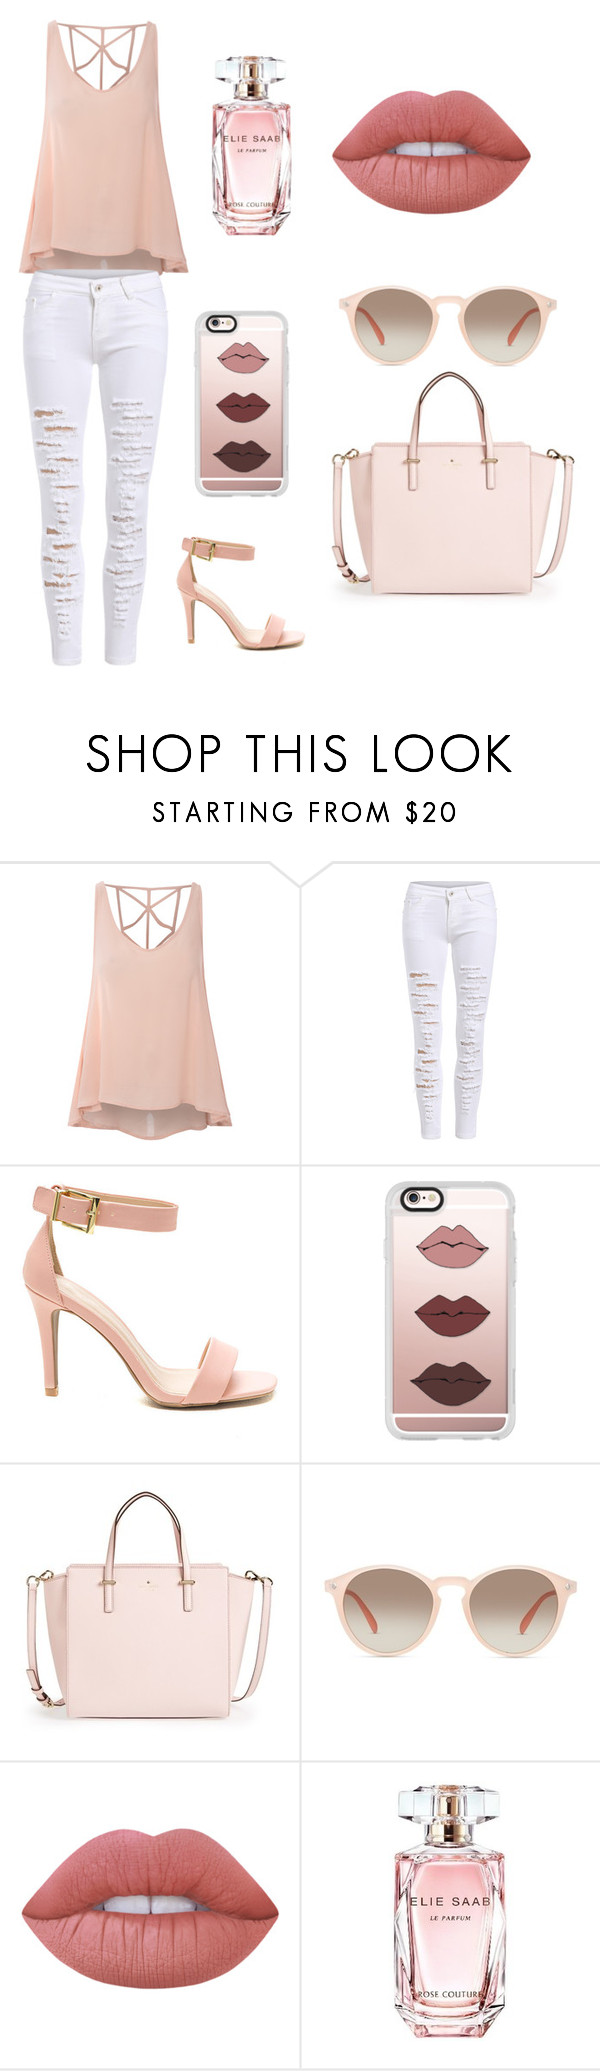 """""""Birthday dinner"""" by bronte03 ❤ liked on Polyvore featuring Glamorous, Casetify, Kate Spade, GlassesUSA, Lime Crime and Elie Saab"""